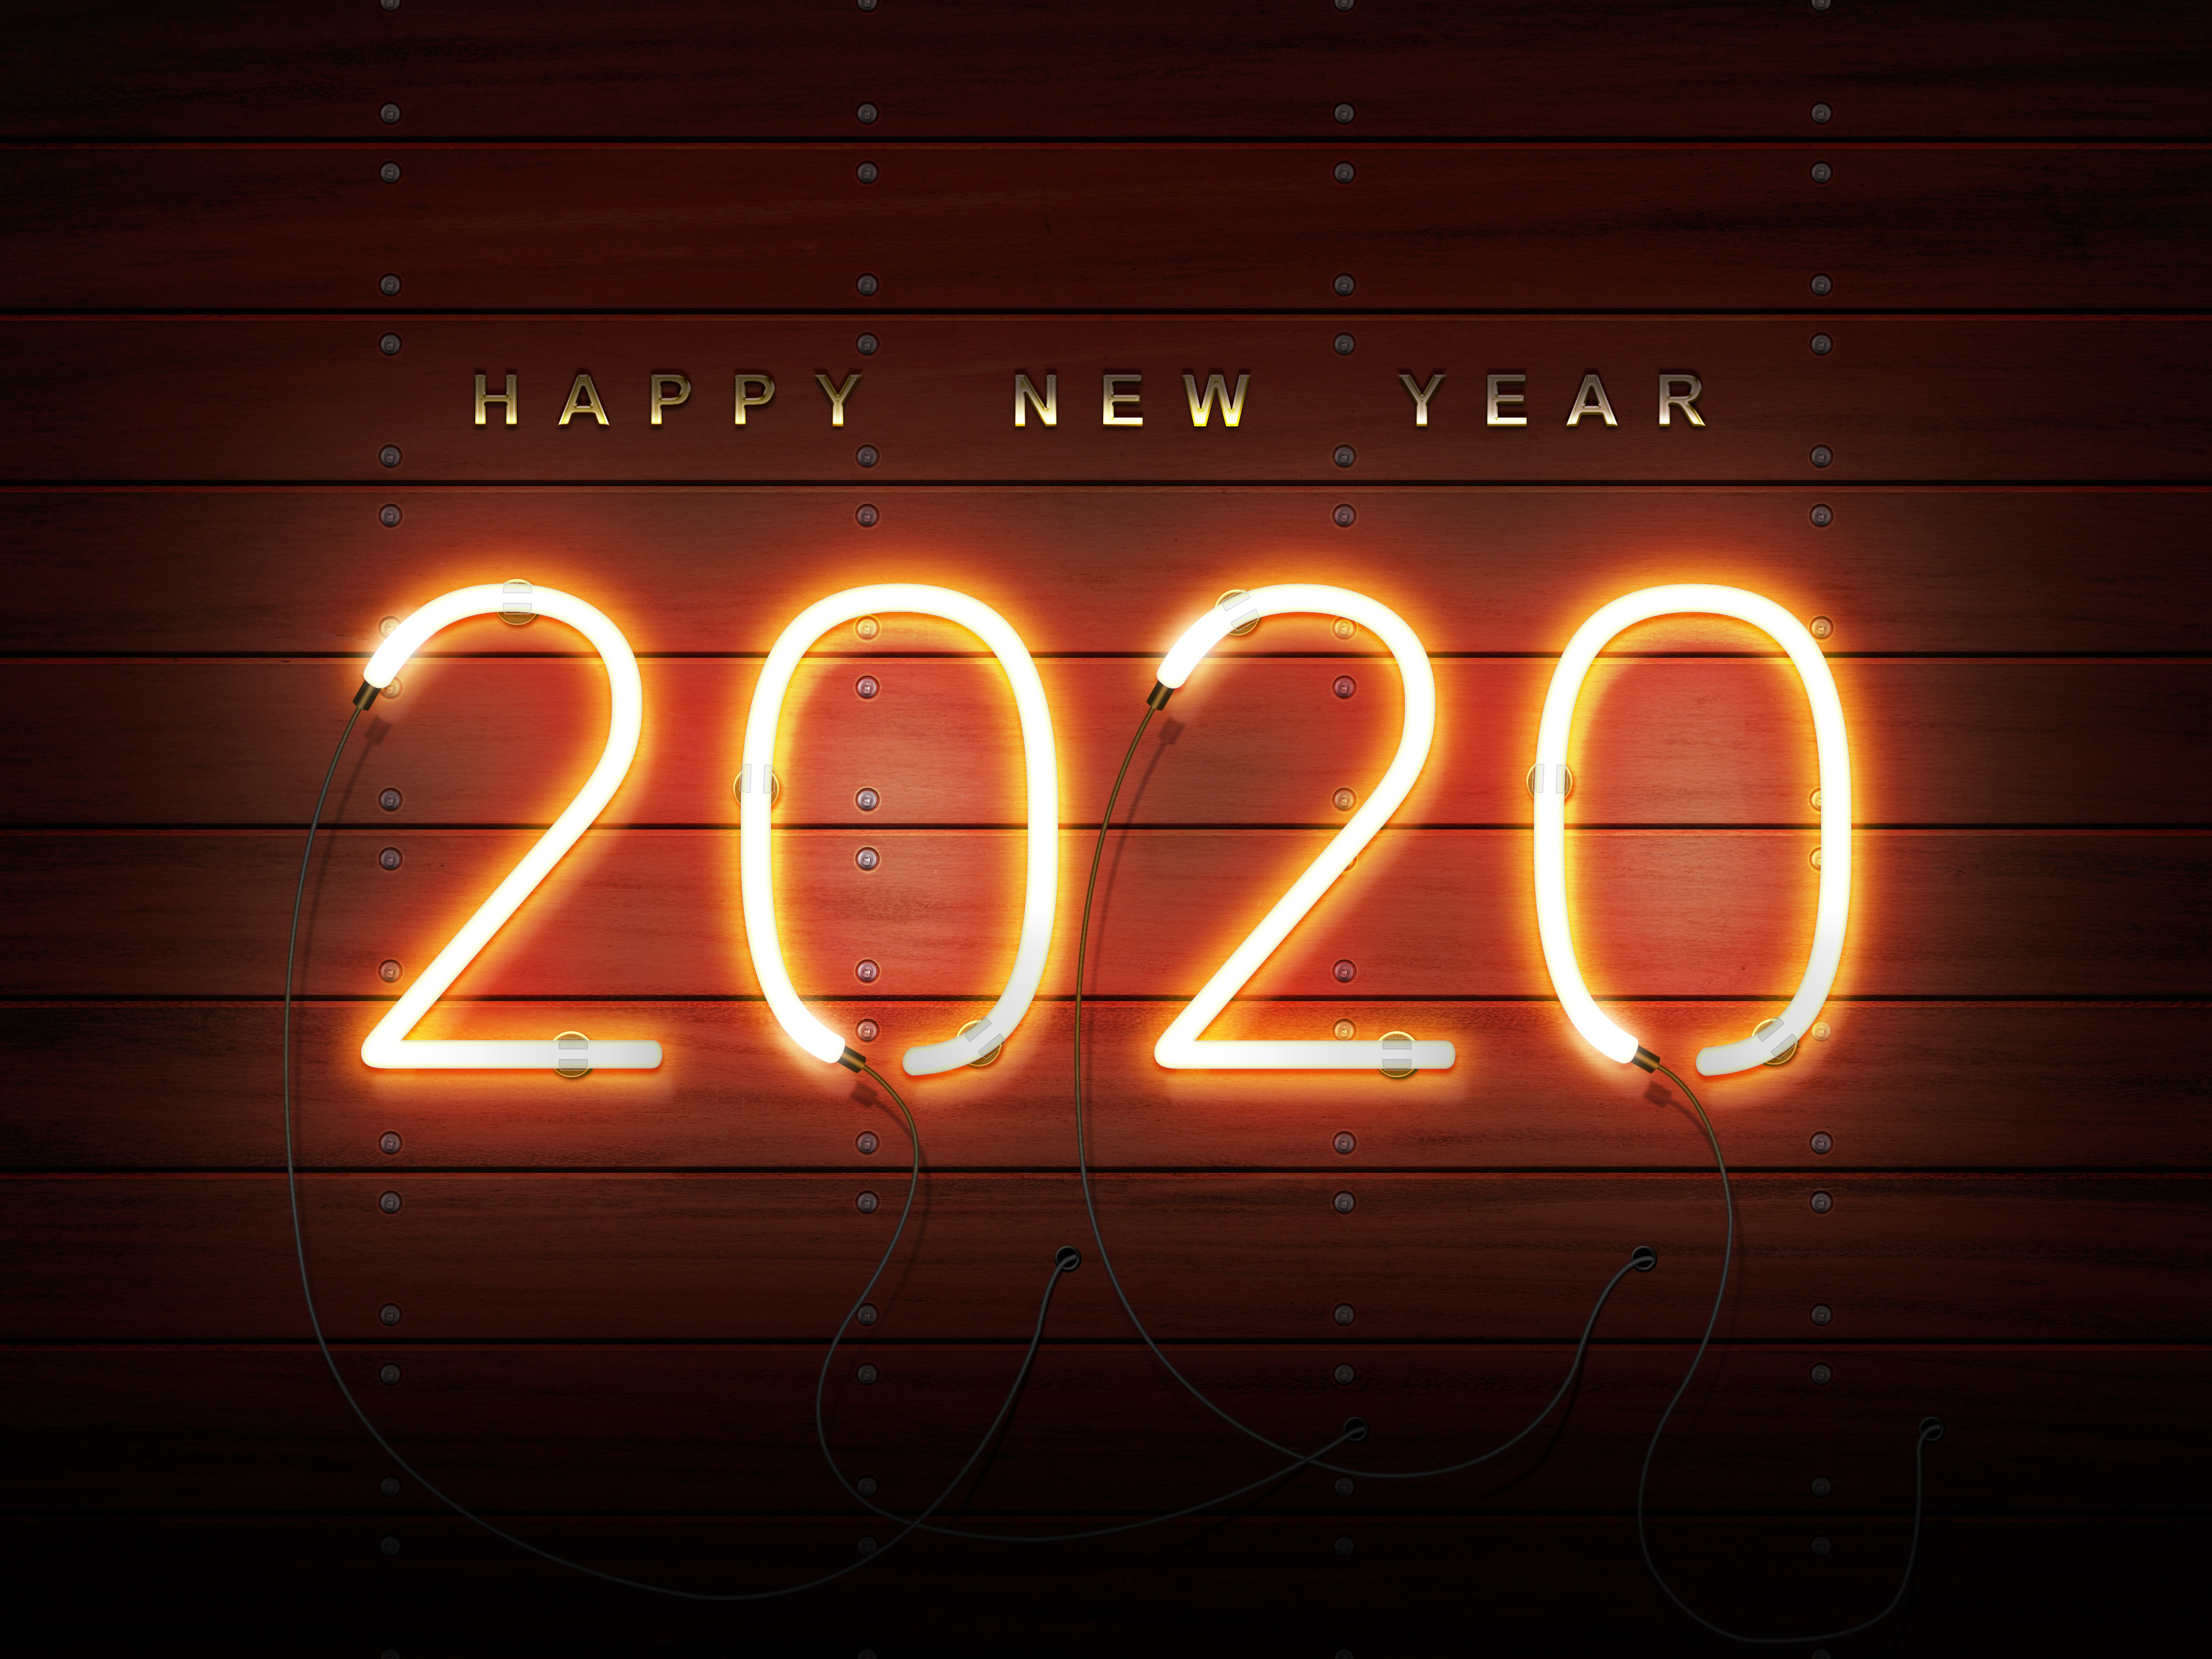 Happy New Year 2020, HD Celebrations, 4k Wallpapers, Images